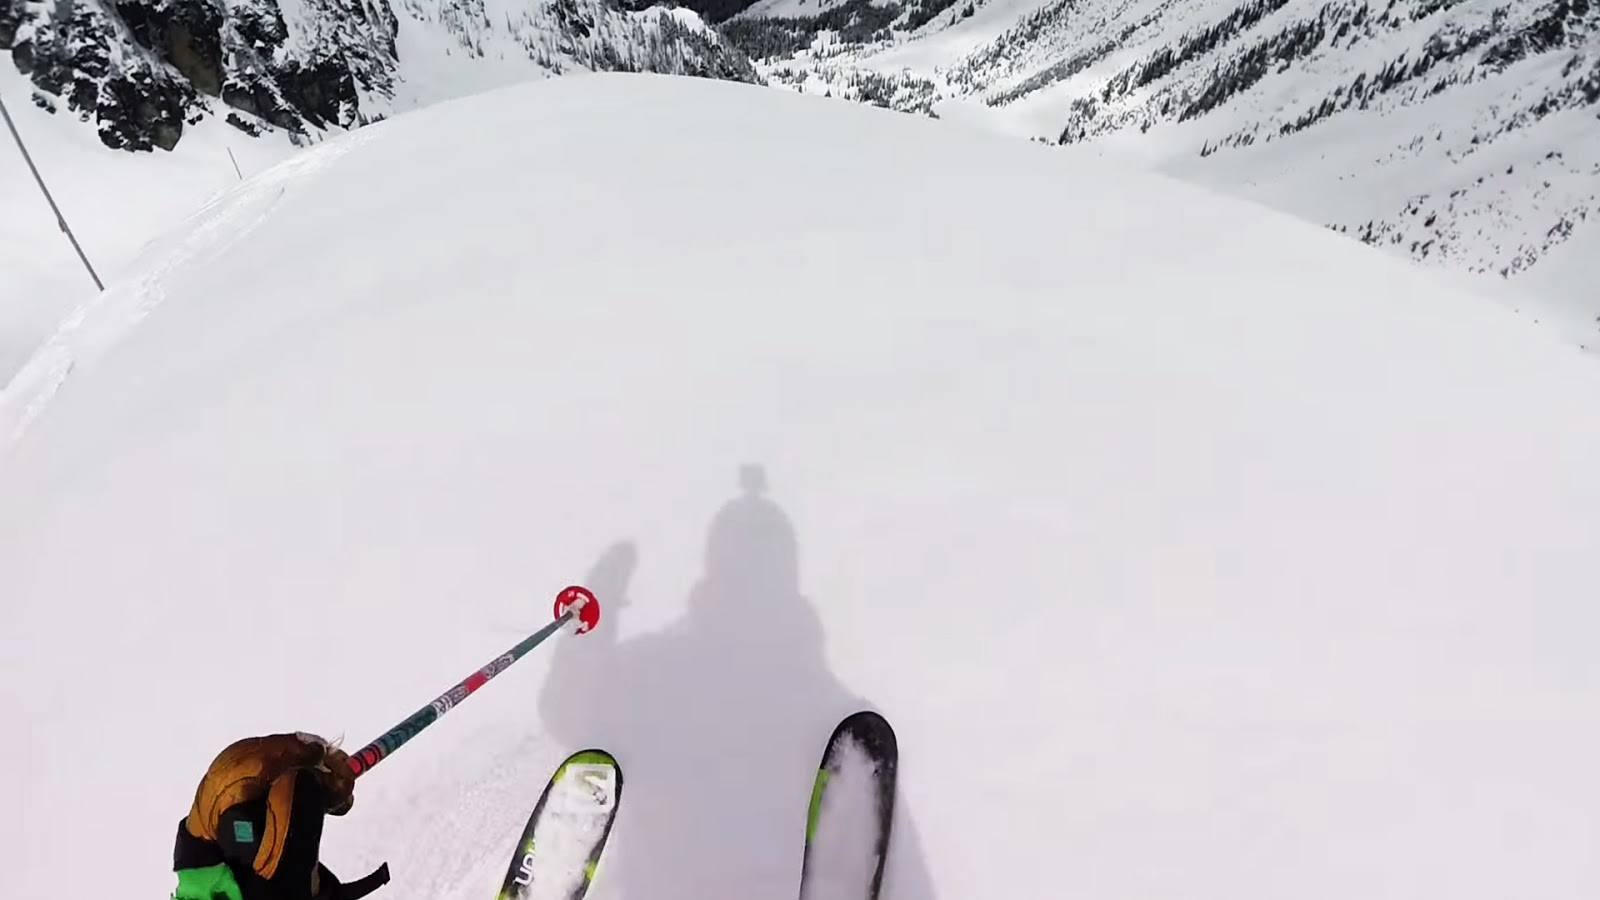 Stan Rey dropping in to Spanky's at Whistler Blackcomb.